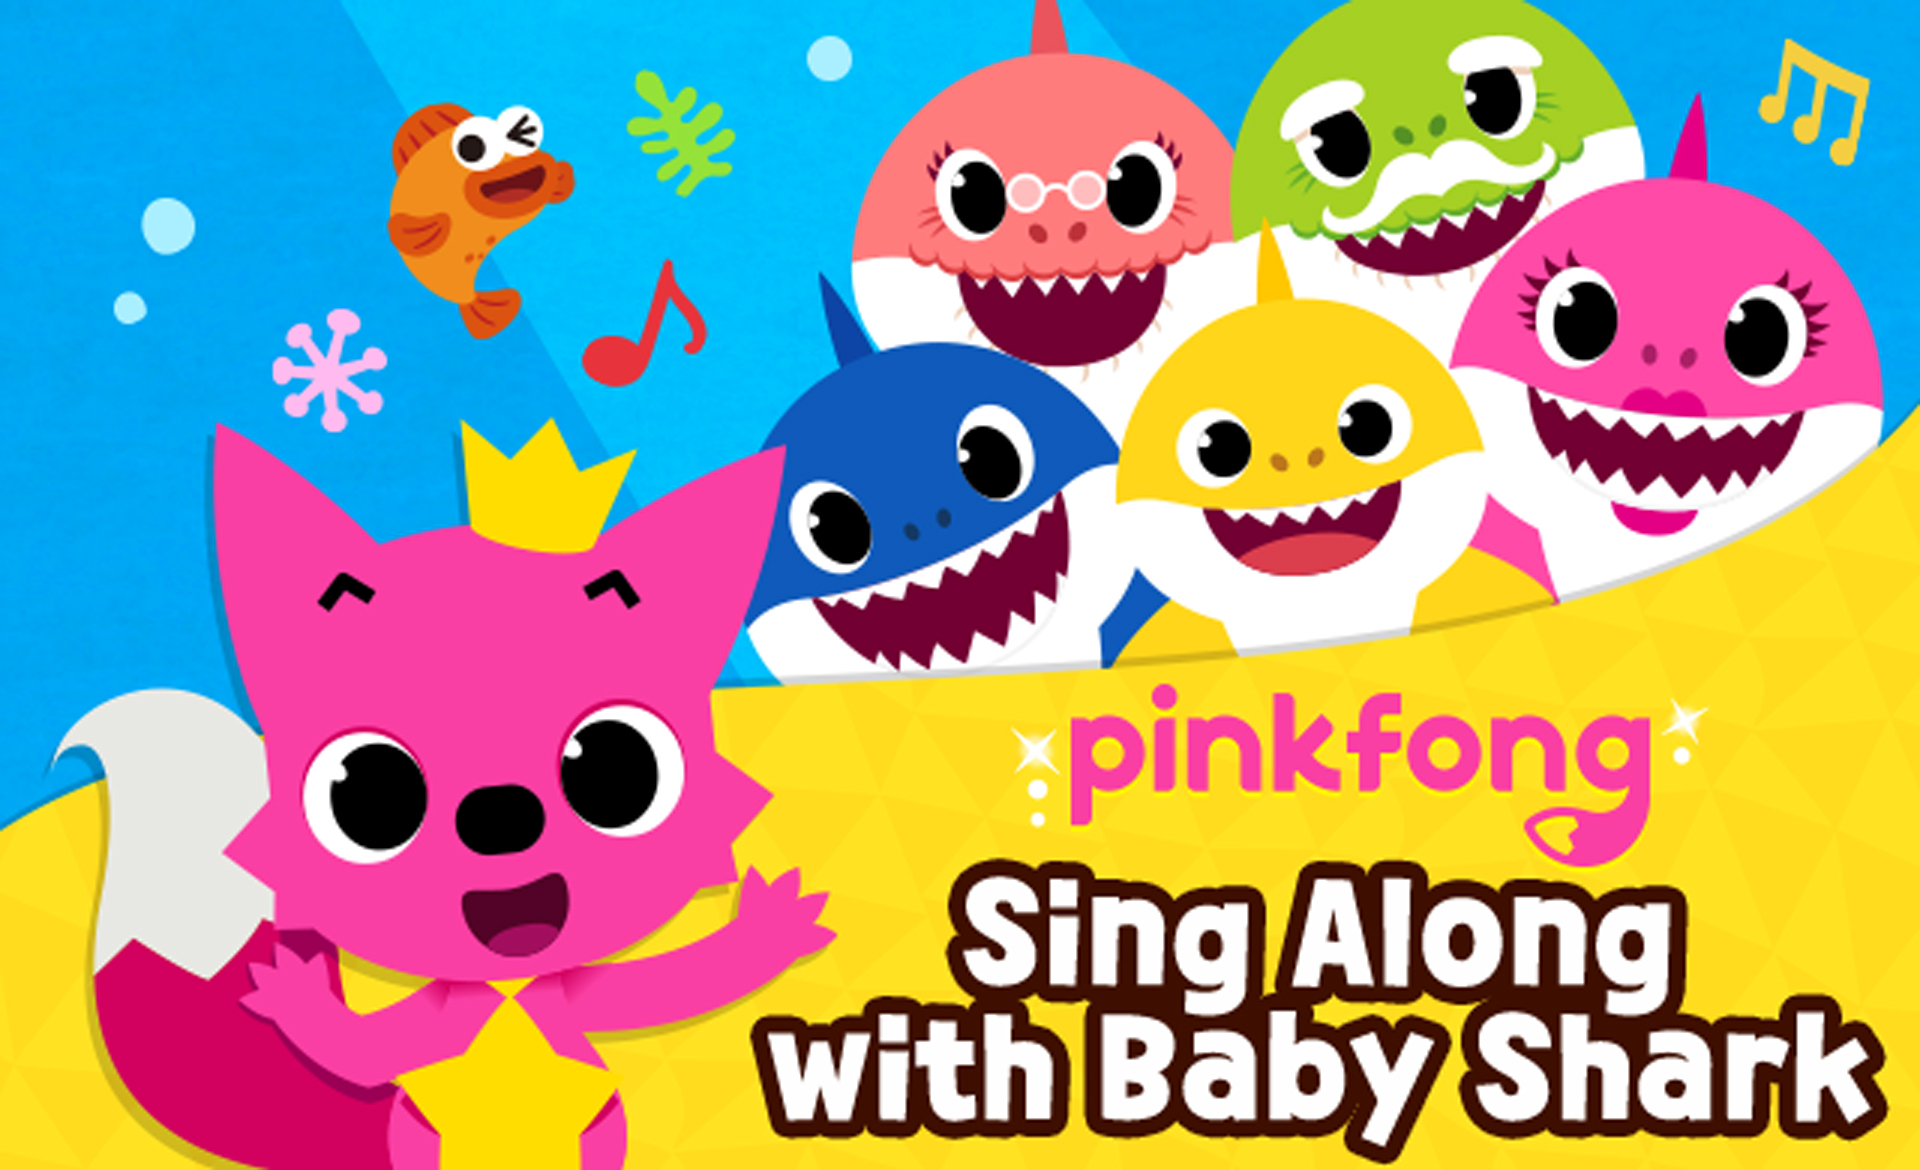 2. Pinkfong Sing Along with Baby Shark